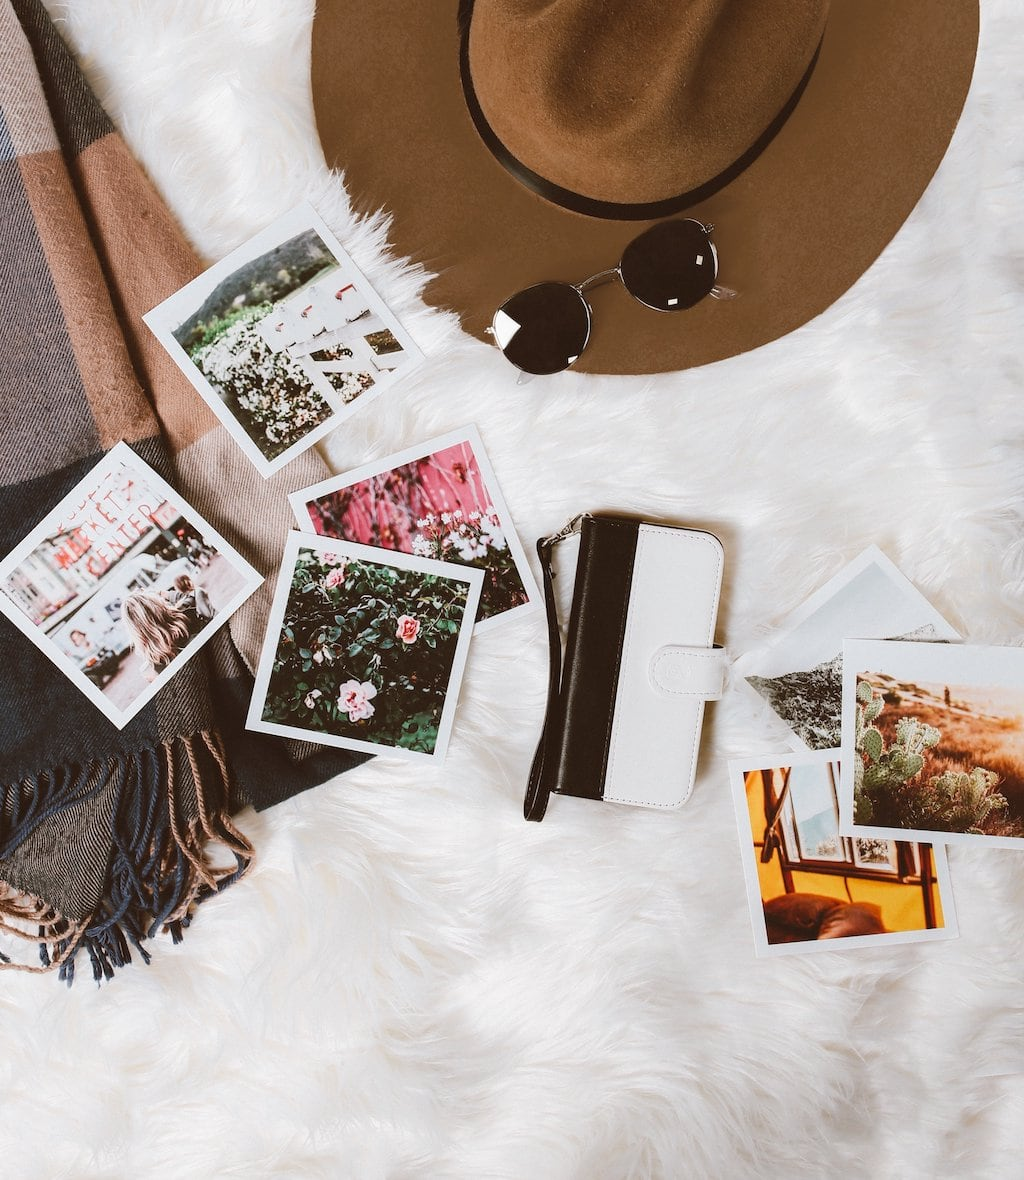 Fashion and photos flatlay